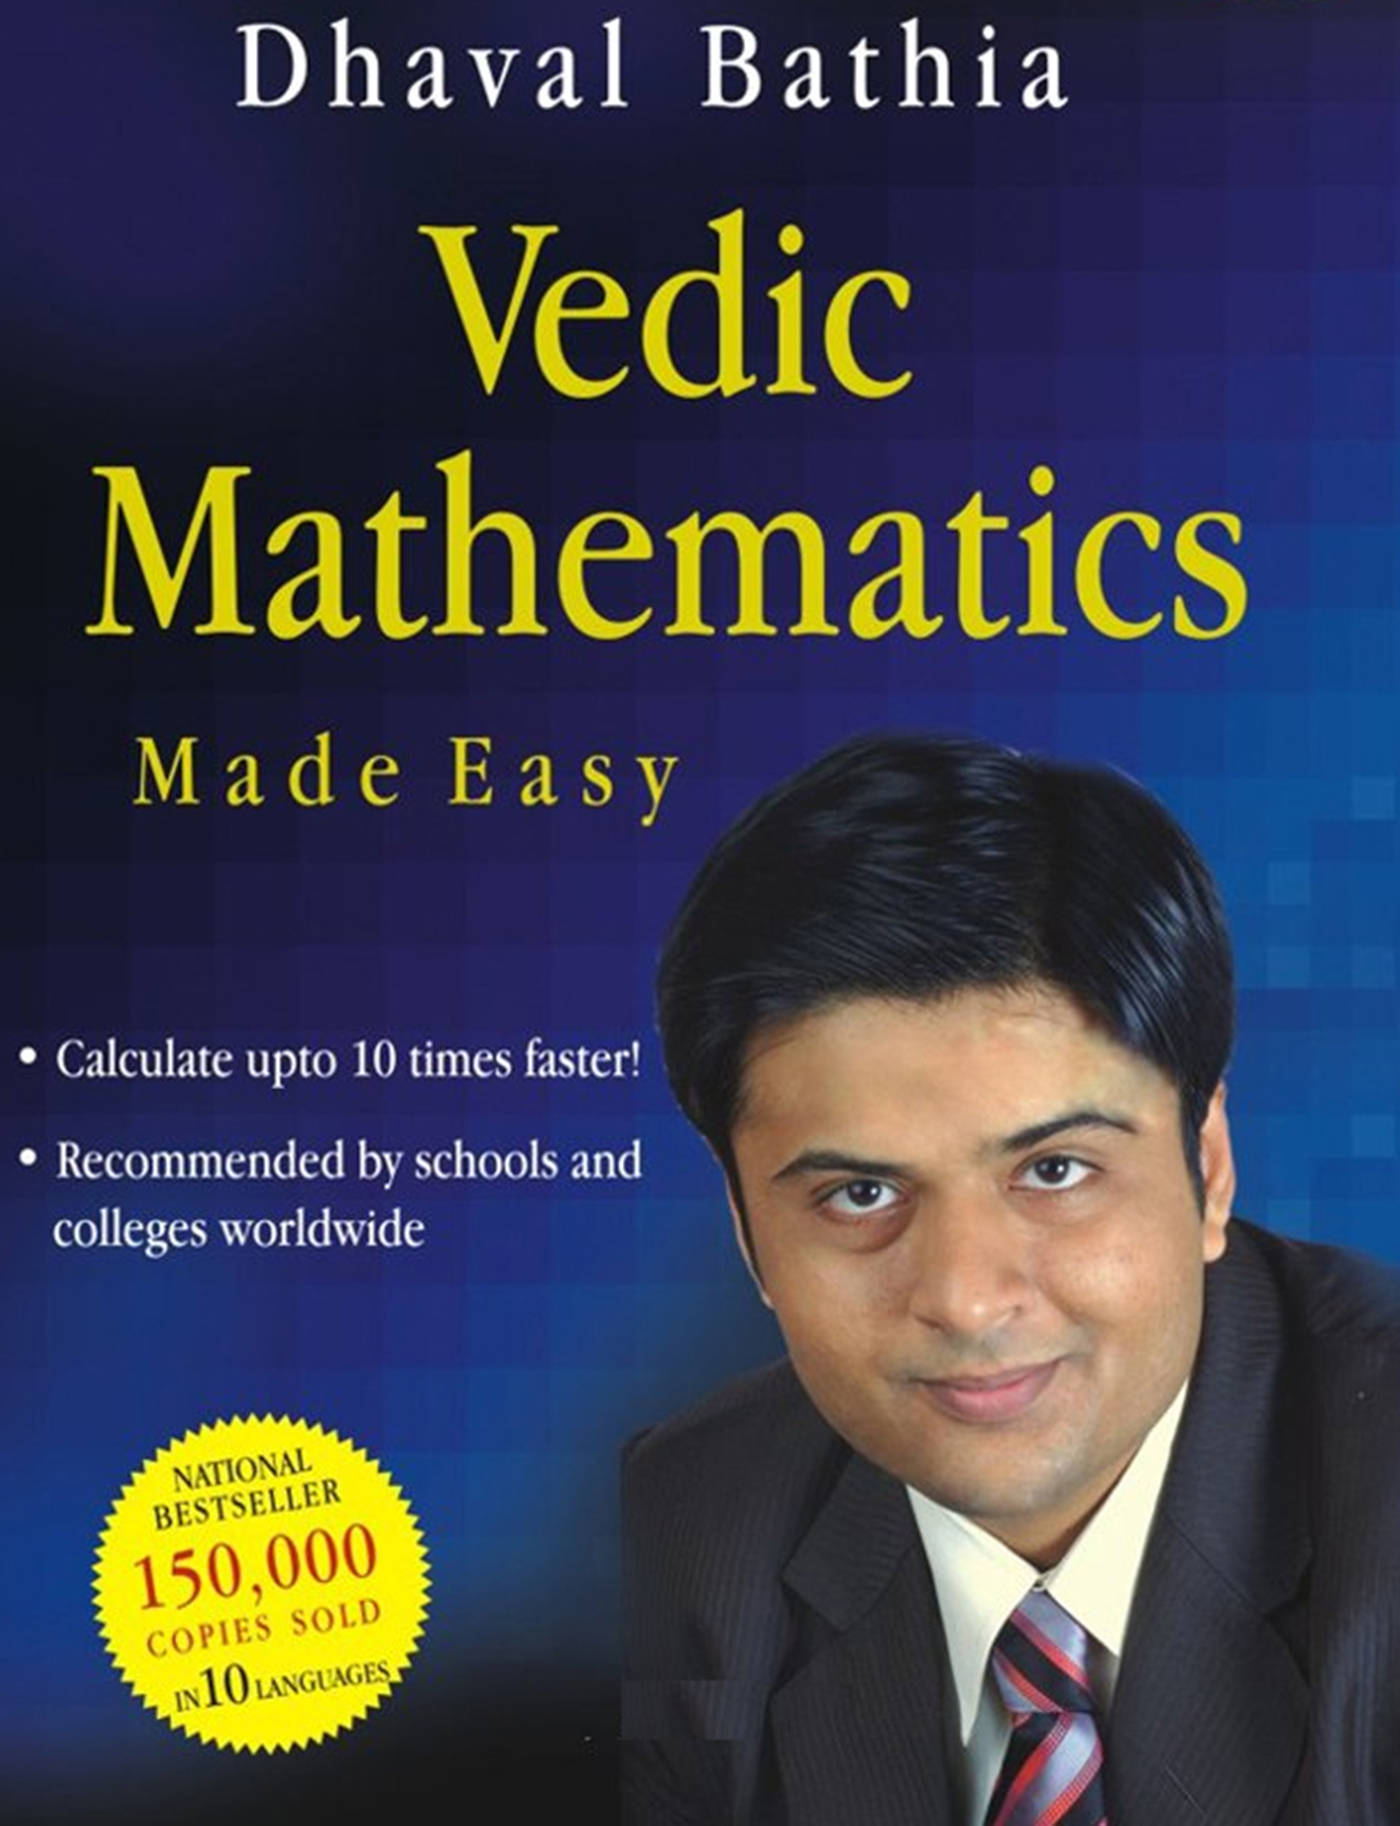 Smashwords – vedic mathematics made easy – a book by dhaval bathia.